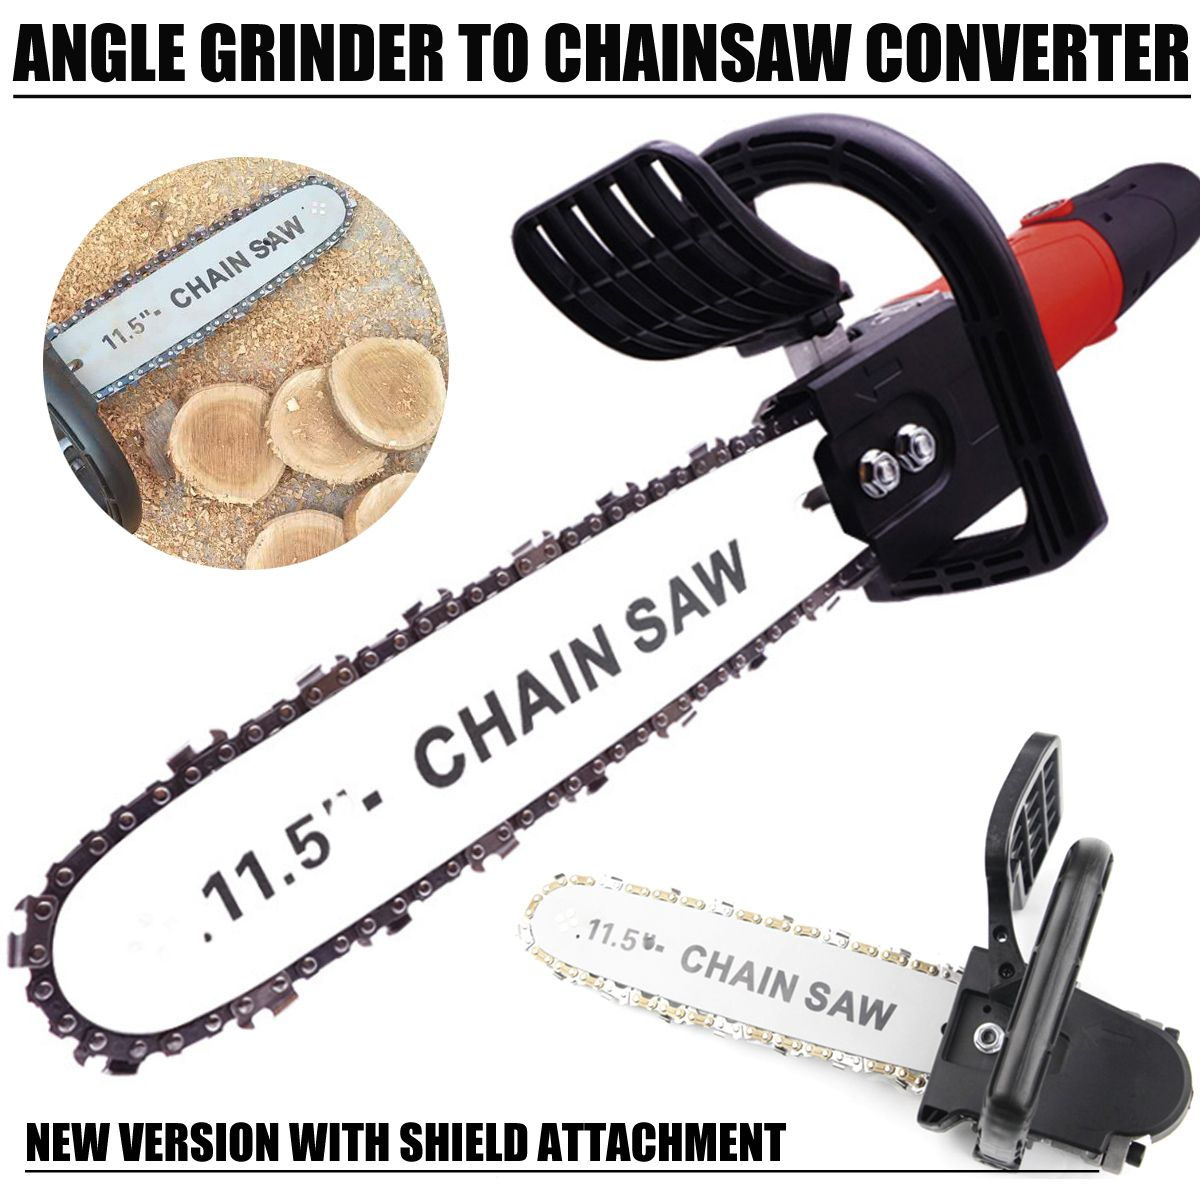 DIY Electric Saw 11.5 Inch Chainsaw Bracket Set High Carbon Steel For M10 Angle Grinder To Chain Saw Woodworking Power Tool